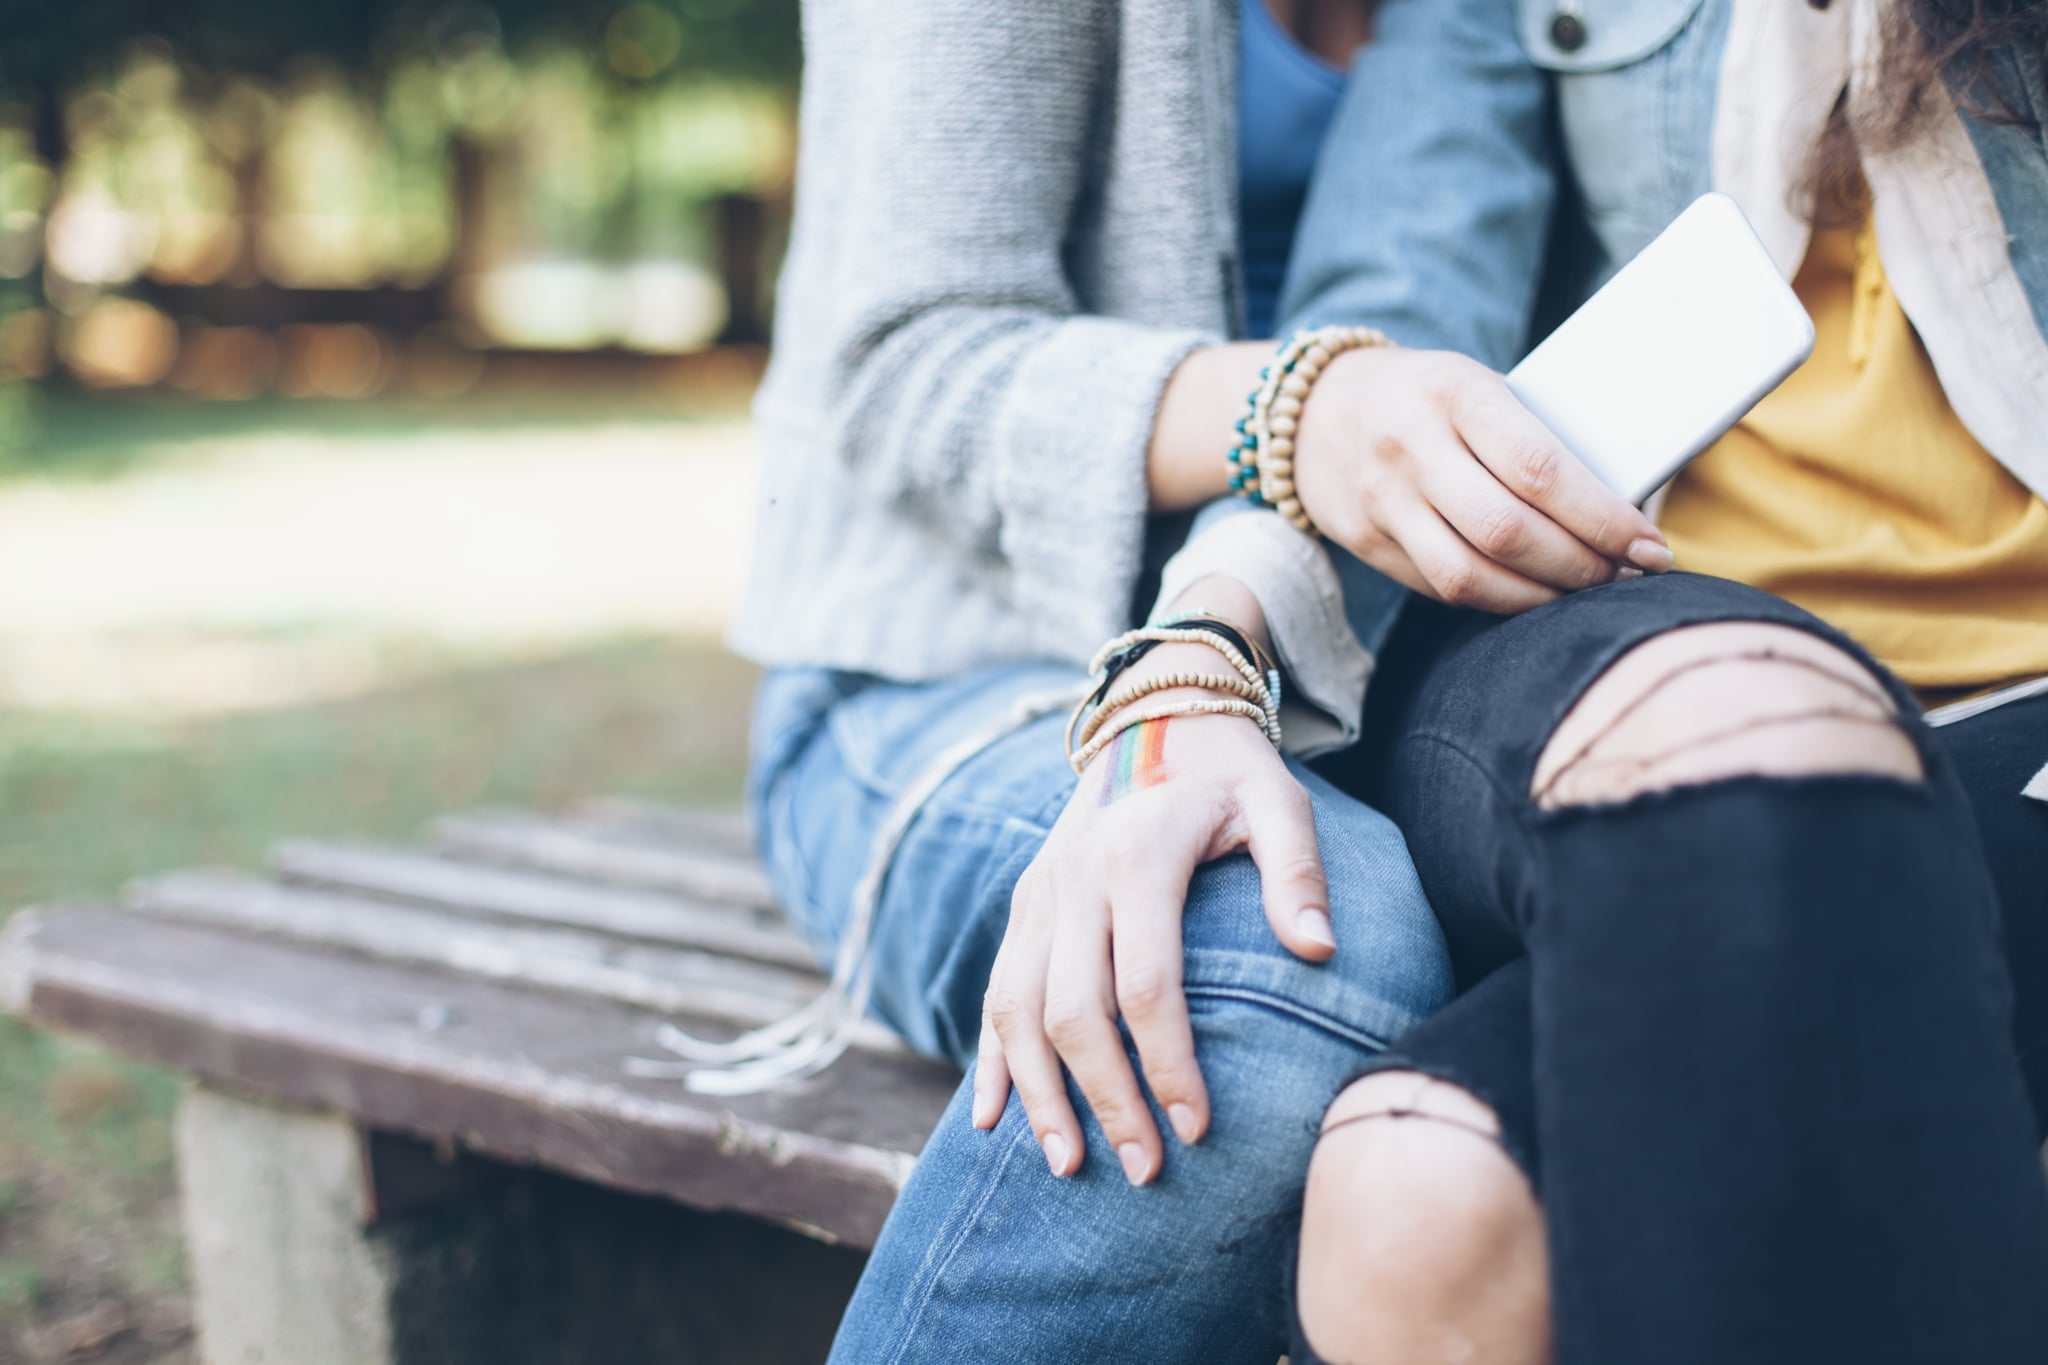 Close up of two unrecognizable women sitting on bench and embracing. One holding smart phone, other with rainbow flag drawned on hand. Both with casual clothes and bracelets.